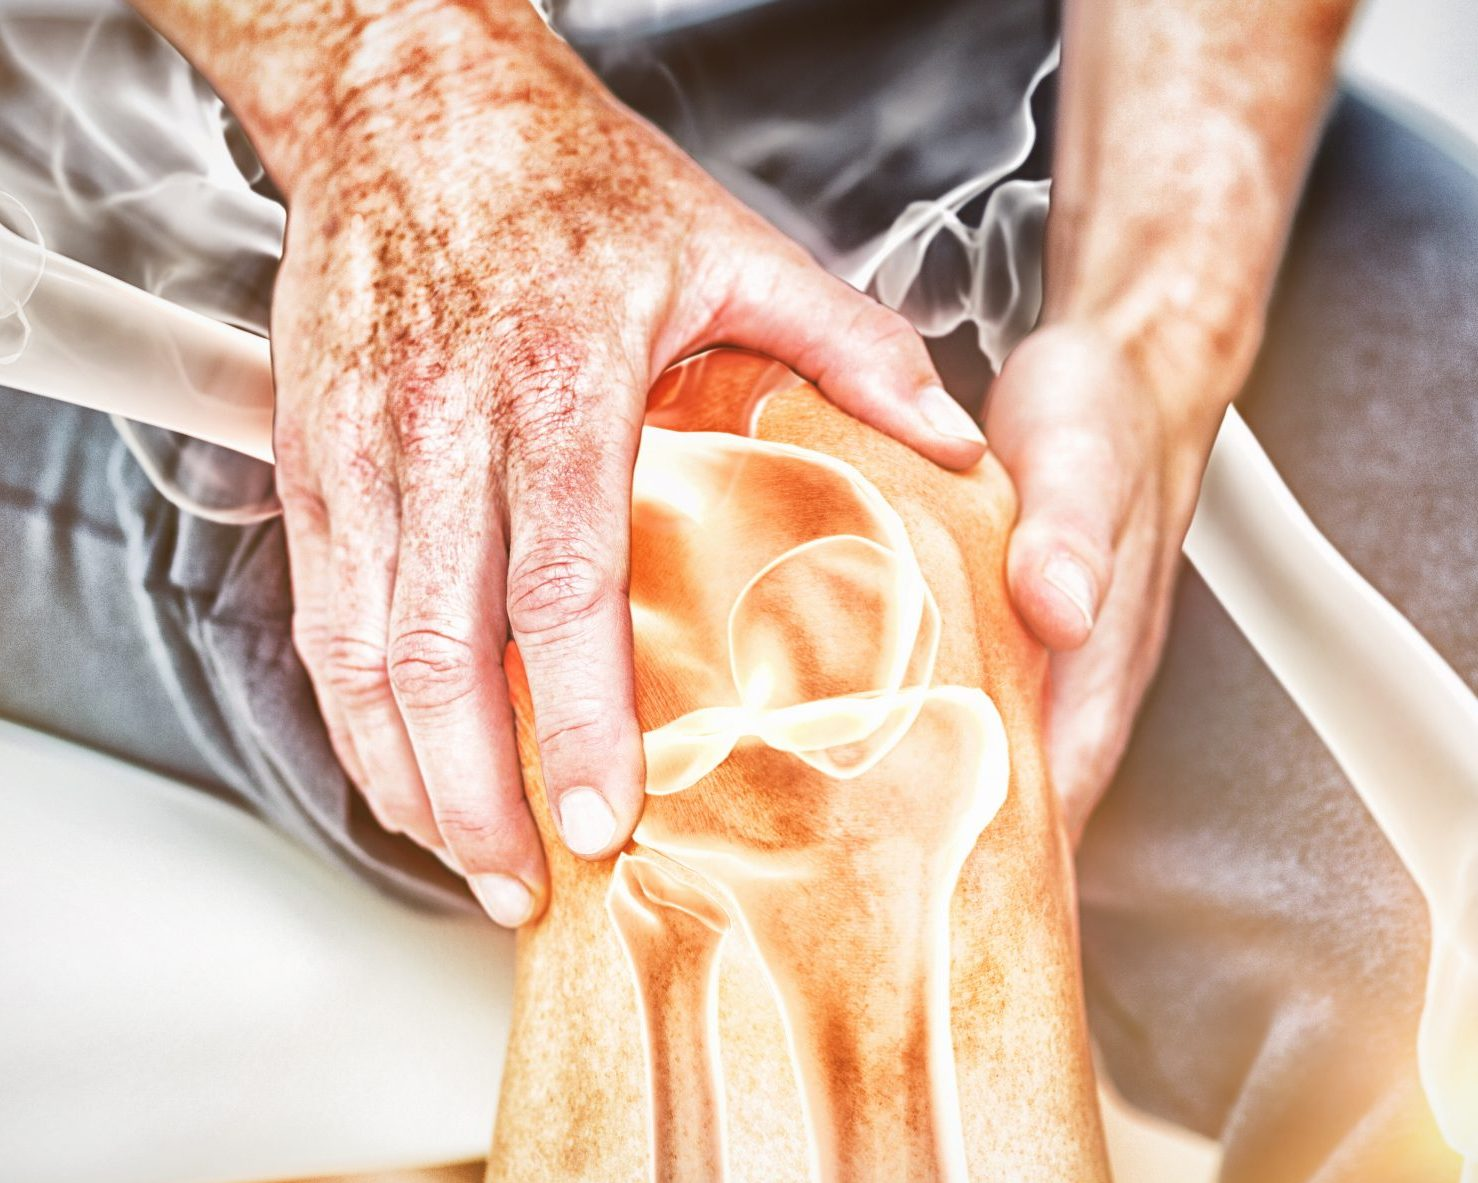 knee pain, arthritis, joint pain, pain management, osteoarthritis, joint pain,